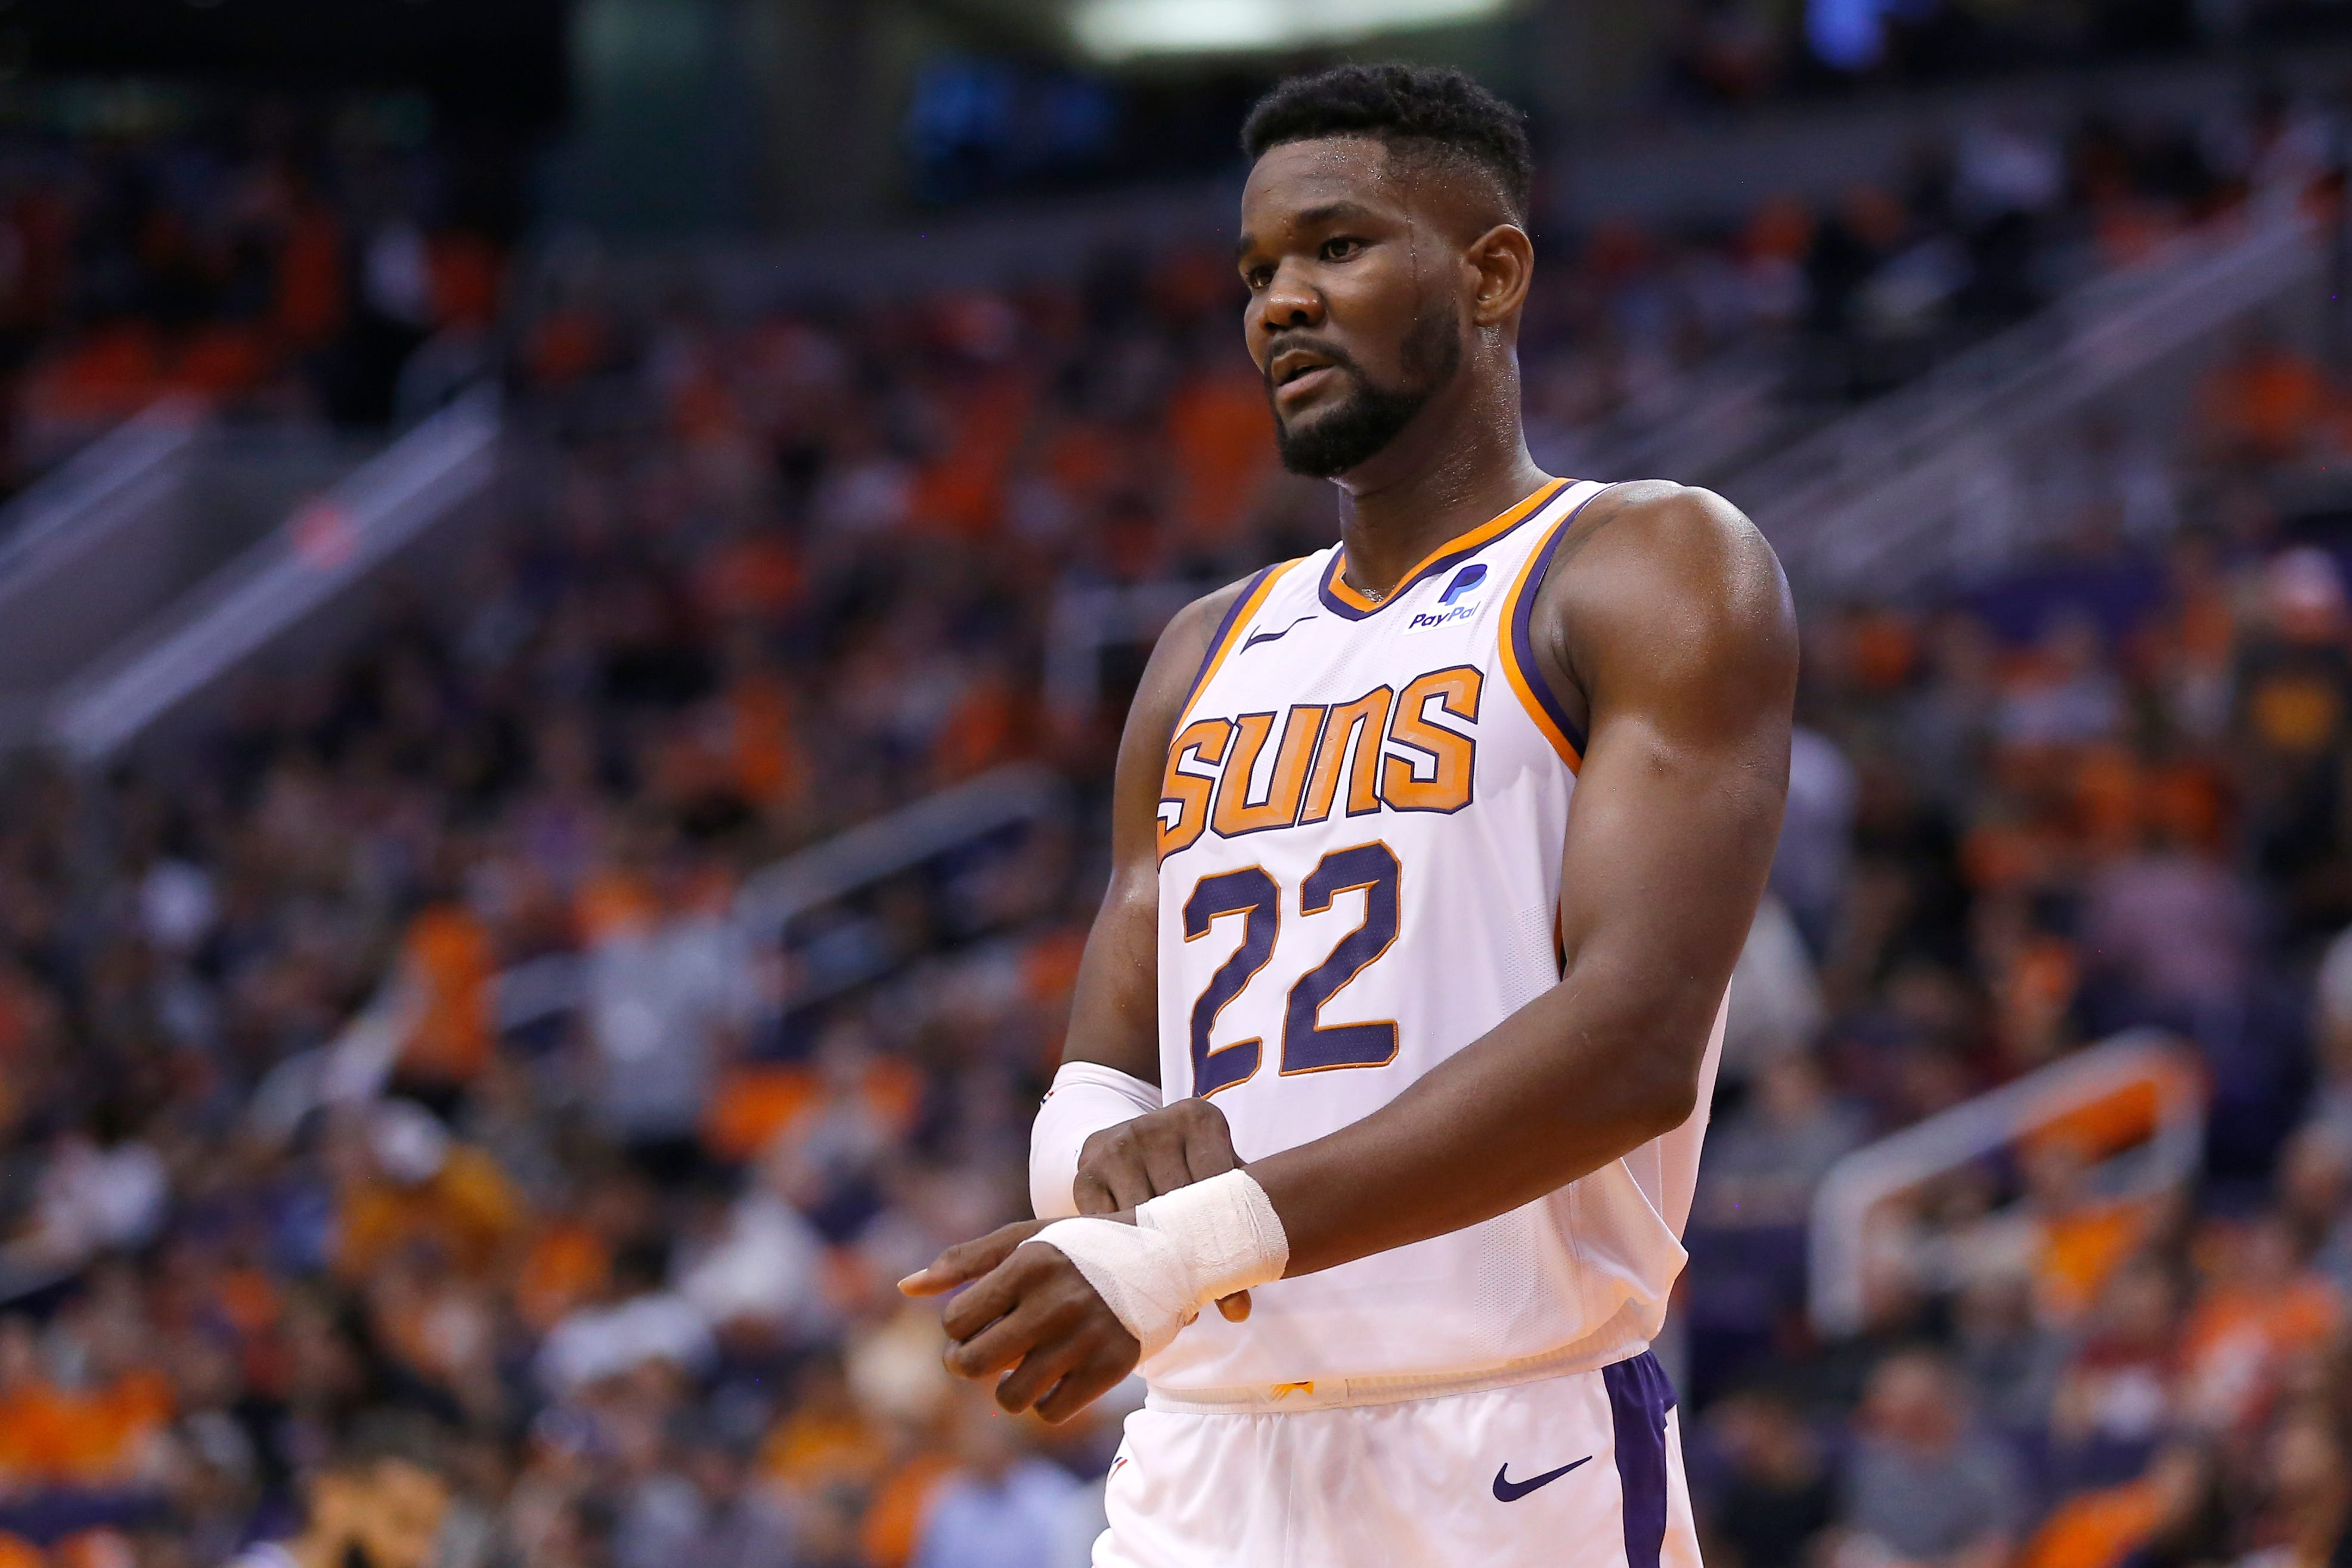 Suns  Deandre Ayton suspended 25 games for violating NBA anti-drug policy